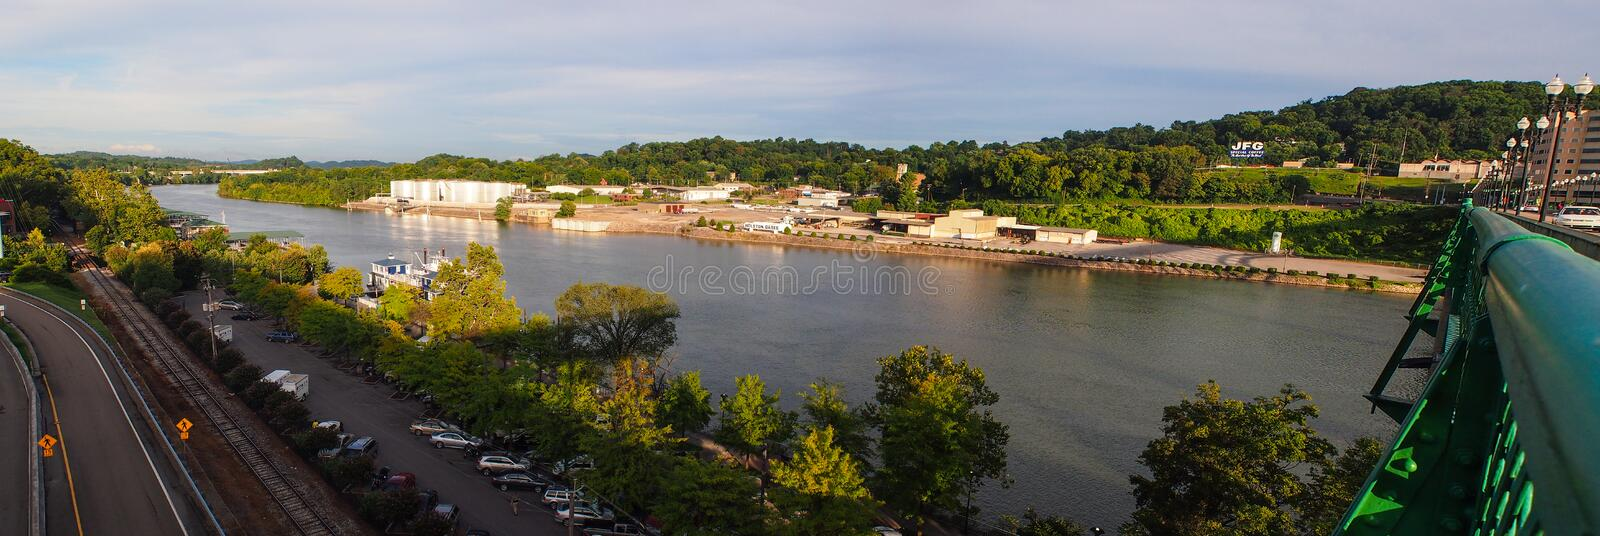 Download Tennessee River stock image. Image of architecture, nature - 33096629